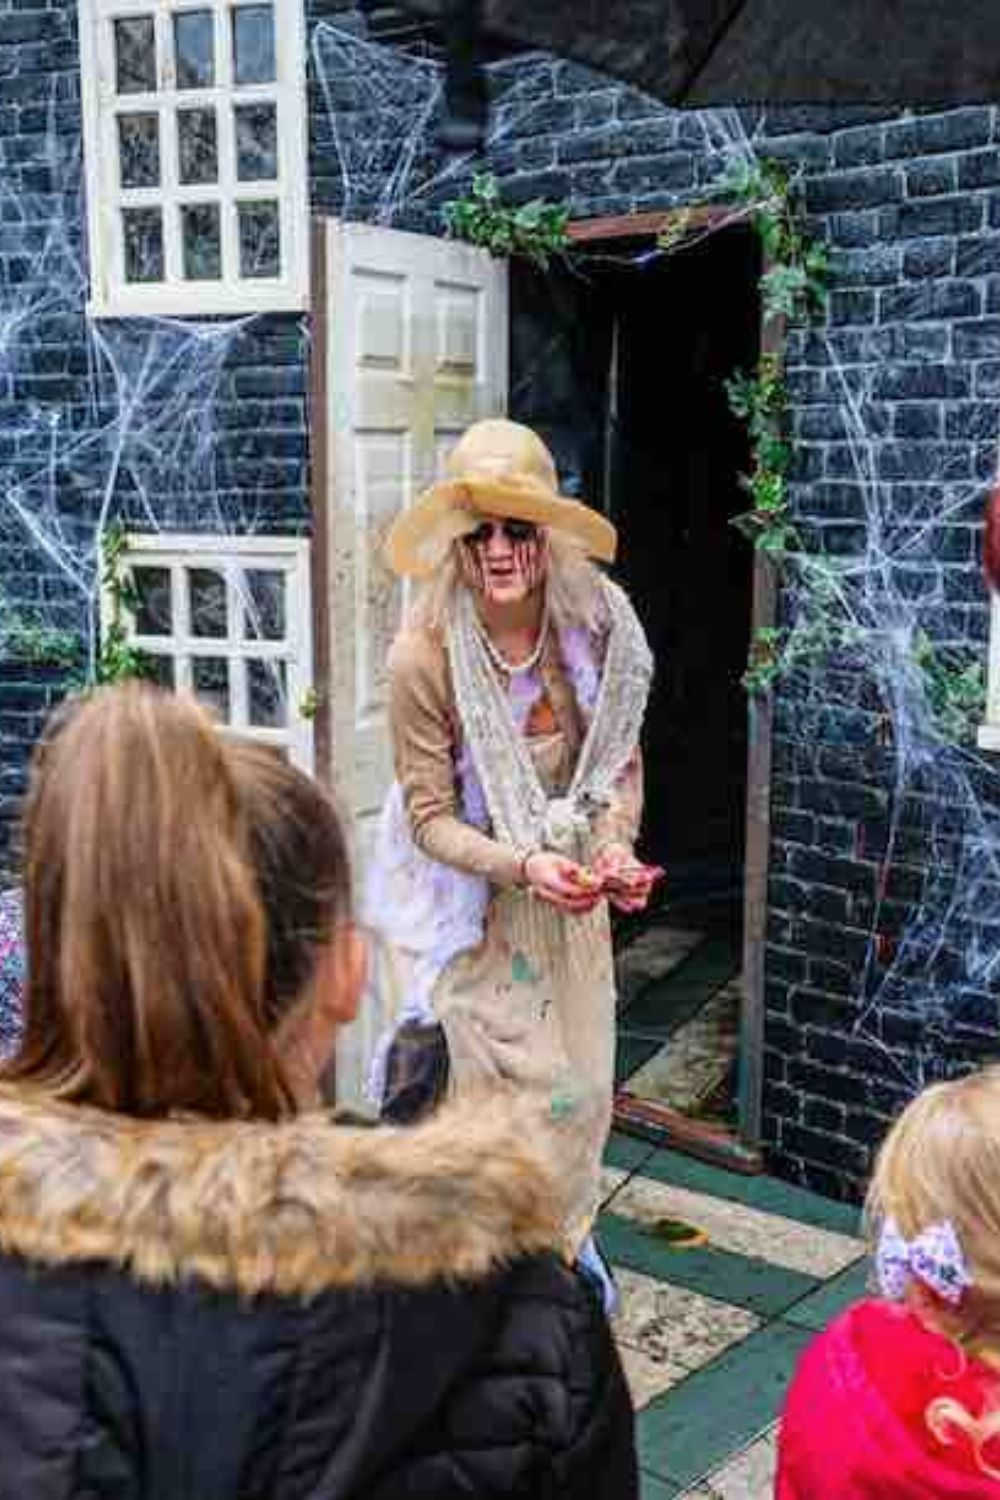 Southport Trick or Treat Street Halloween Retail Event in